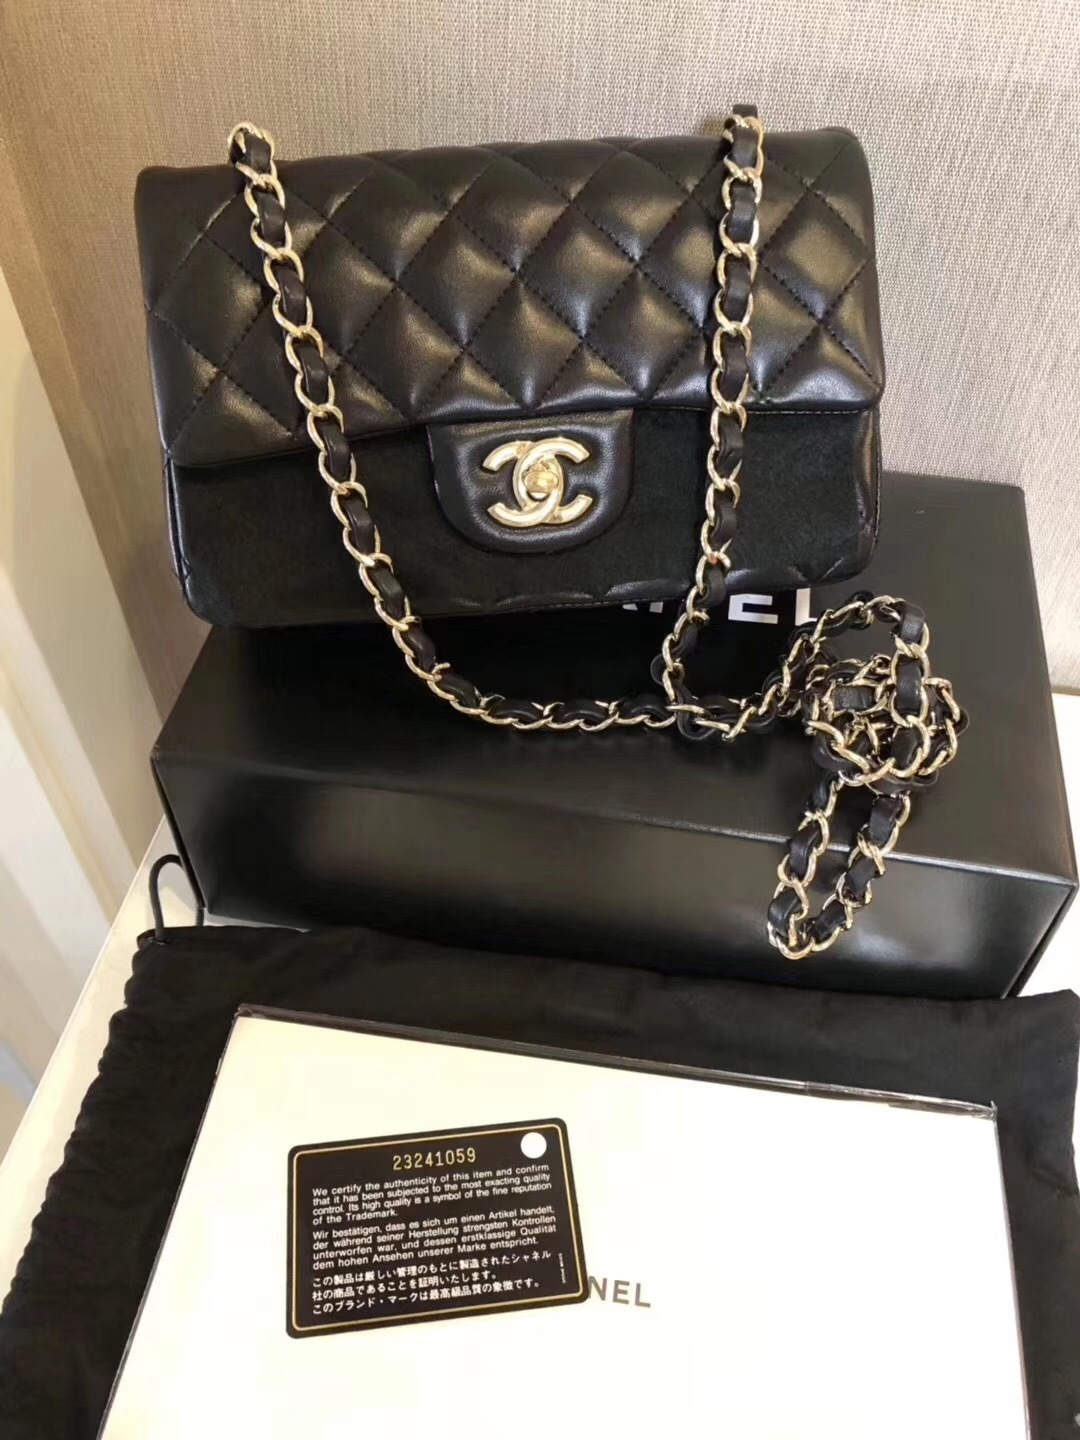 AUTHENTIC CHANEL BLACK QUILTED LAMBSKIN 20cm  LARGE MINI RECTANGULAR FLAP BAG